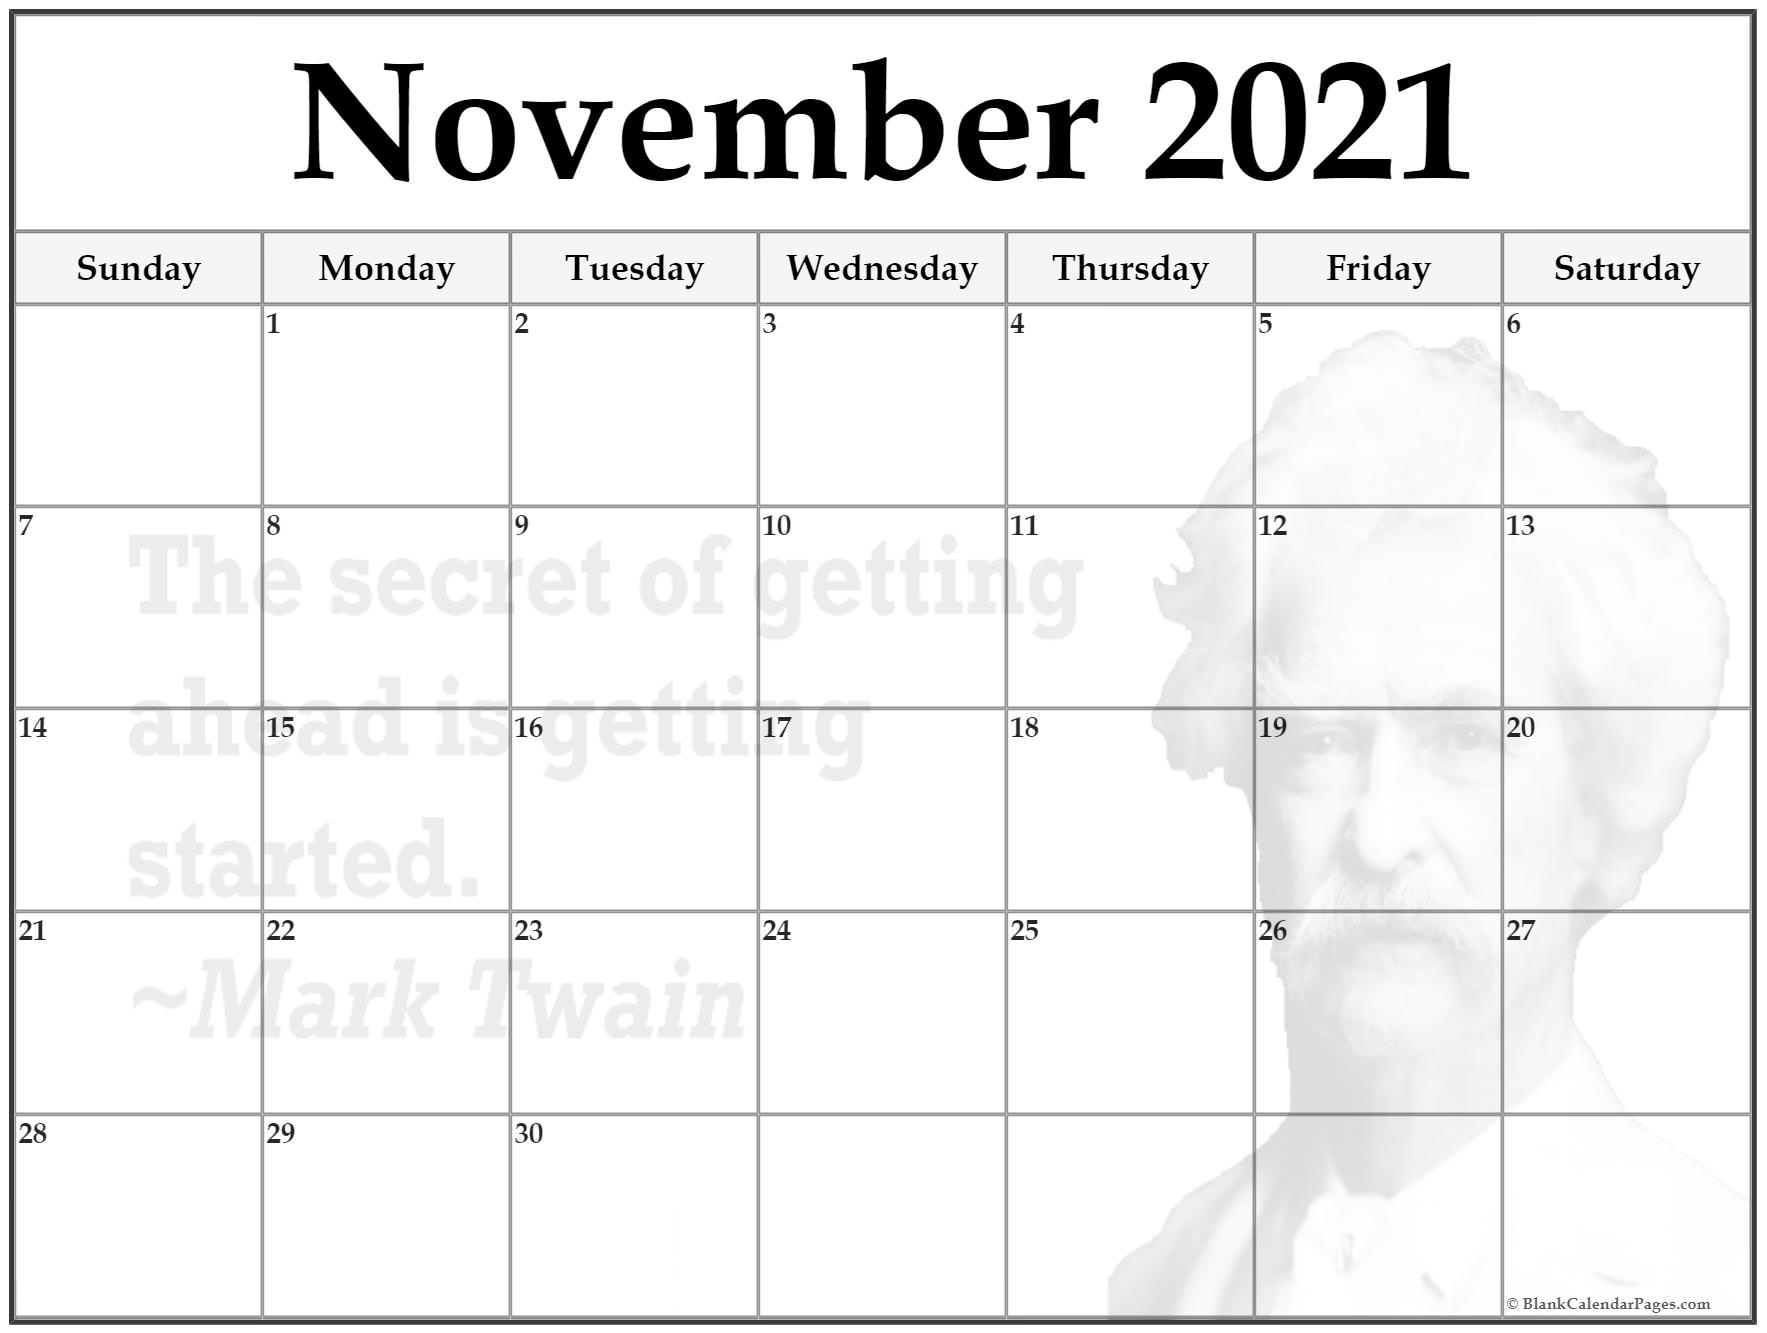 November 2019 printable quote calendar template. The secret of getting ahead is getting started. ~Mark Twain